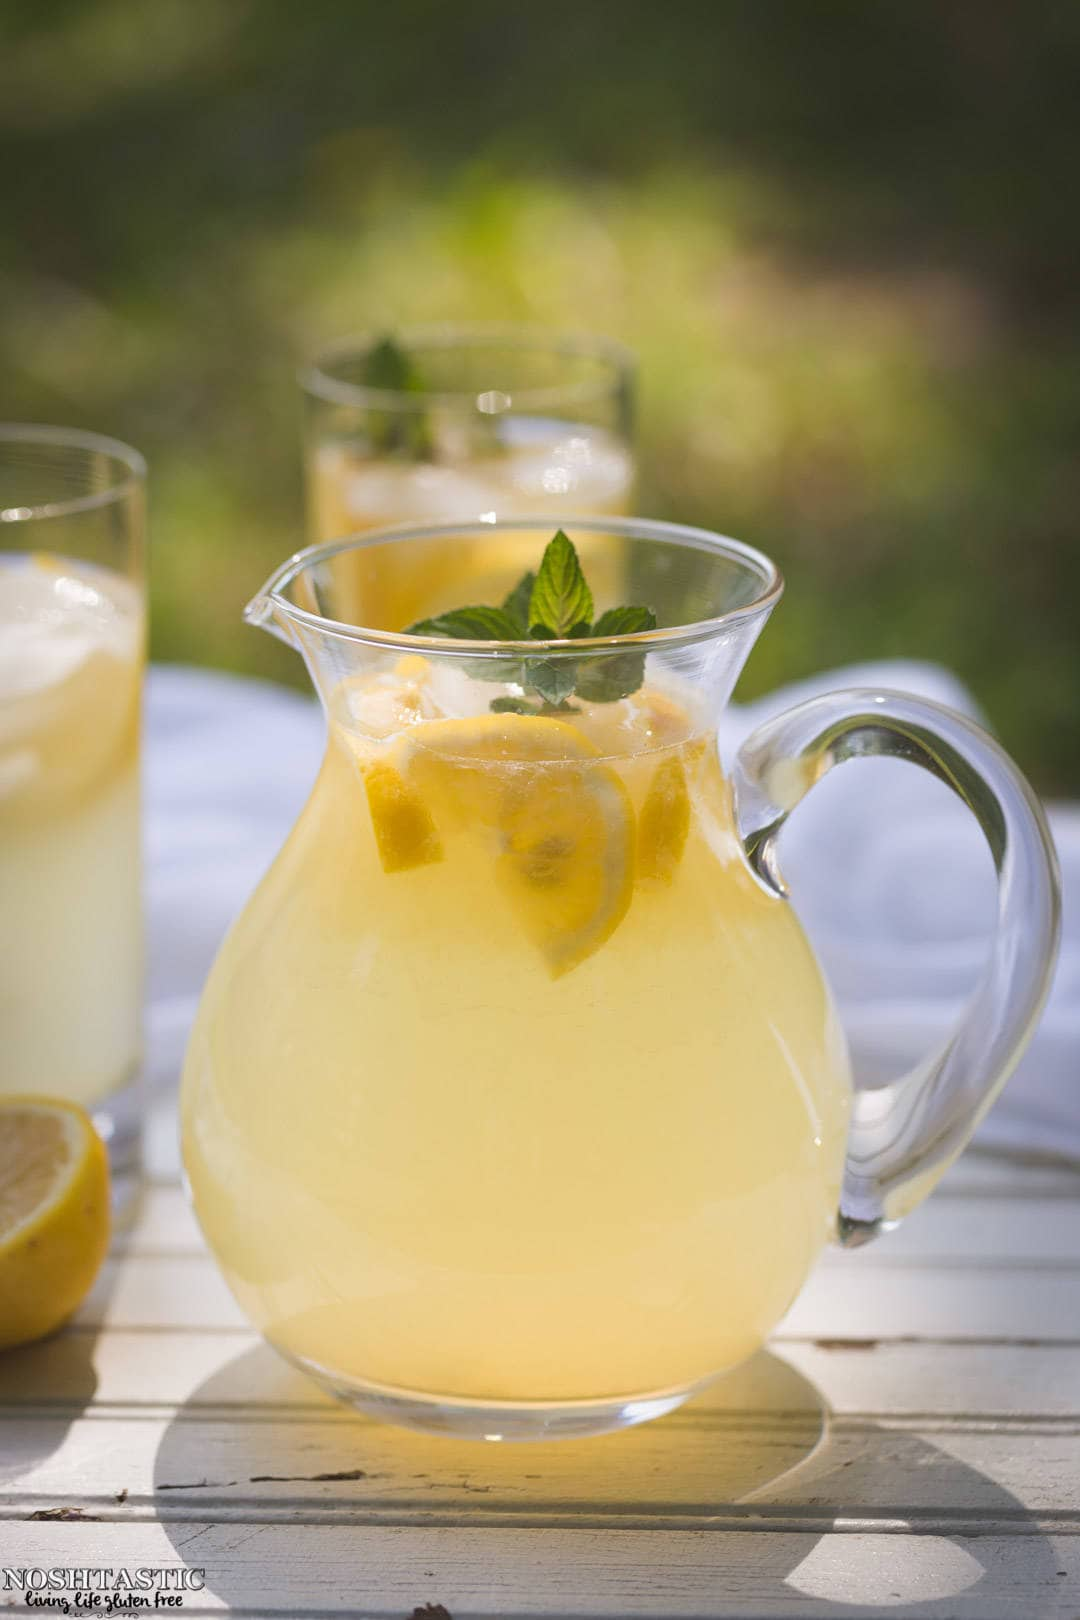 This fresh squeezed Lemonade recipe will blow your mind, you'll never go back to store bought! noshtastic.com